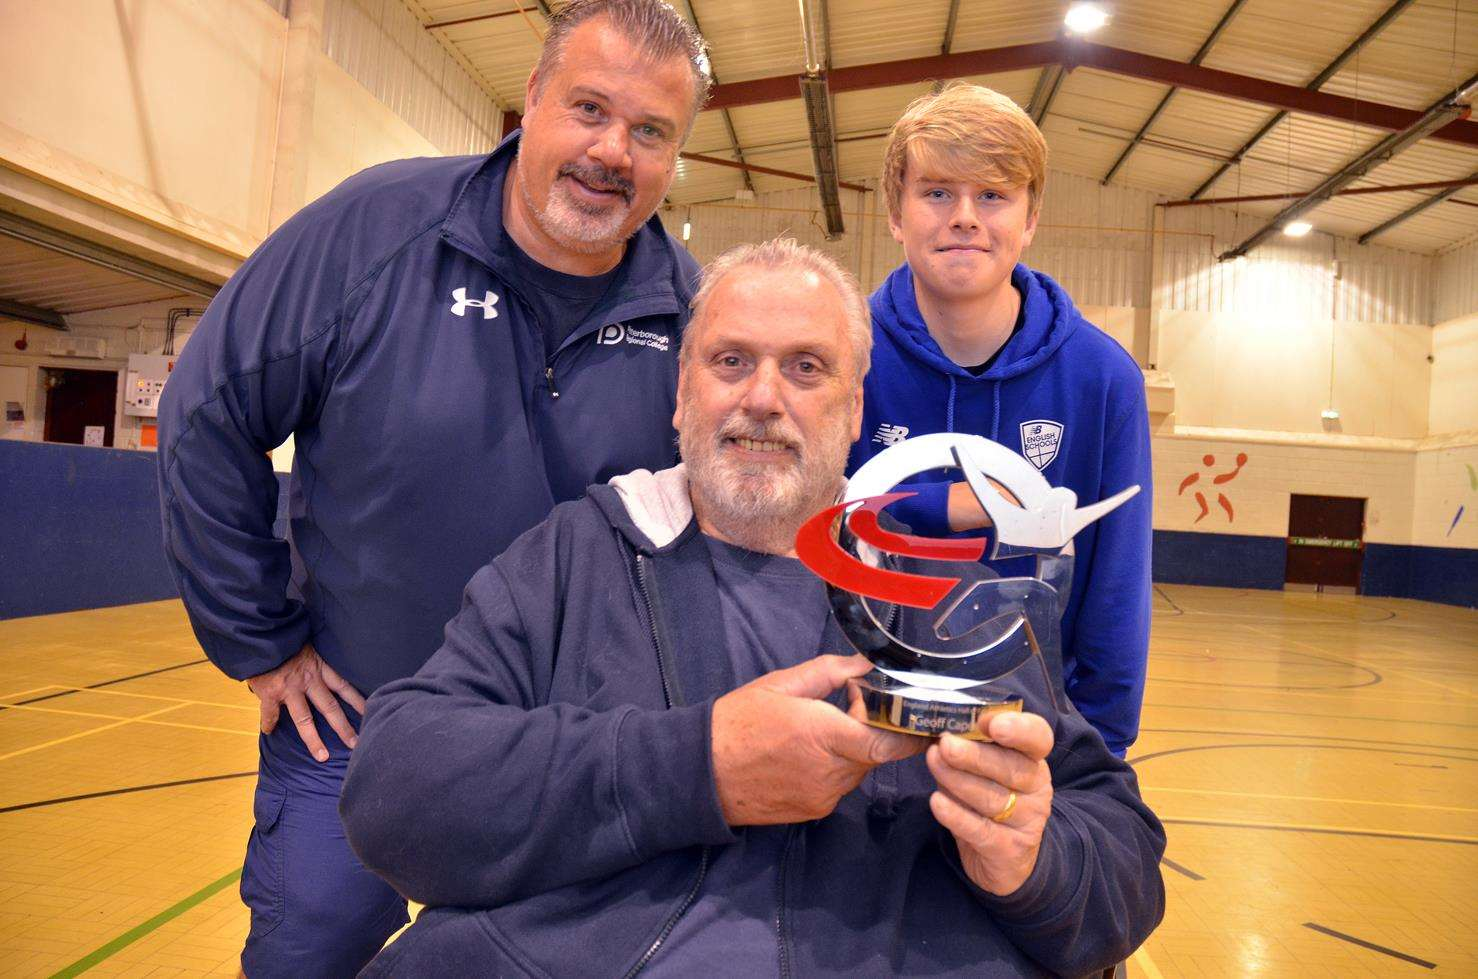 Geoff Capes with son Lewis and grandson Donovan